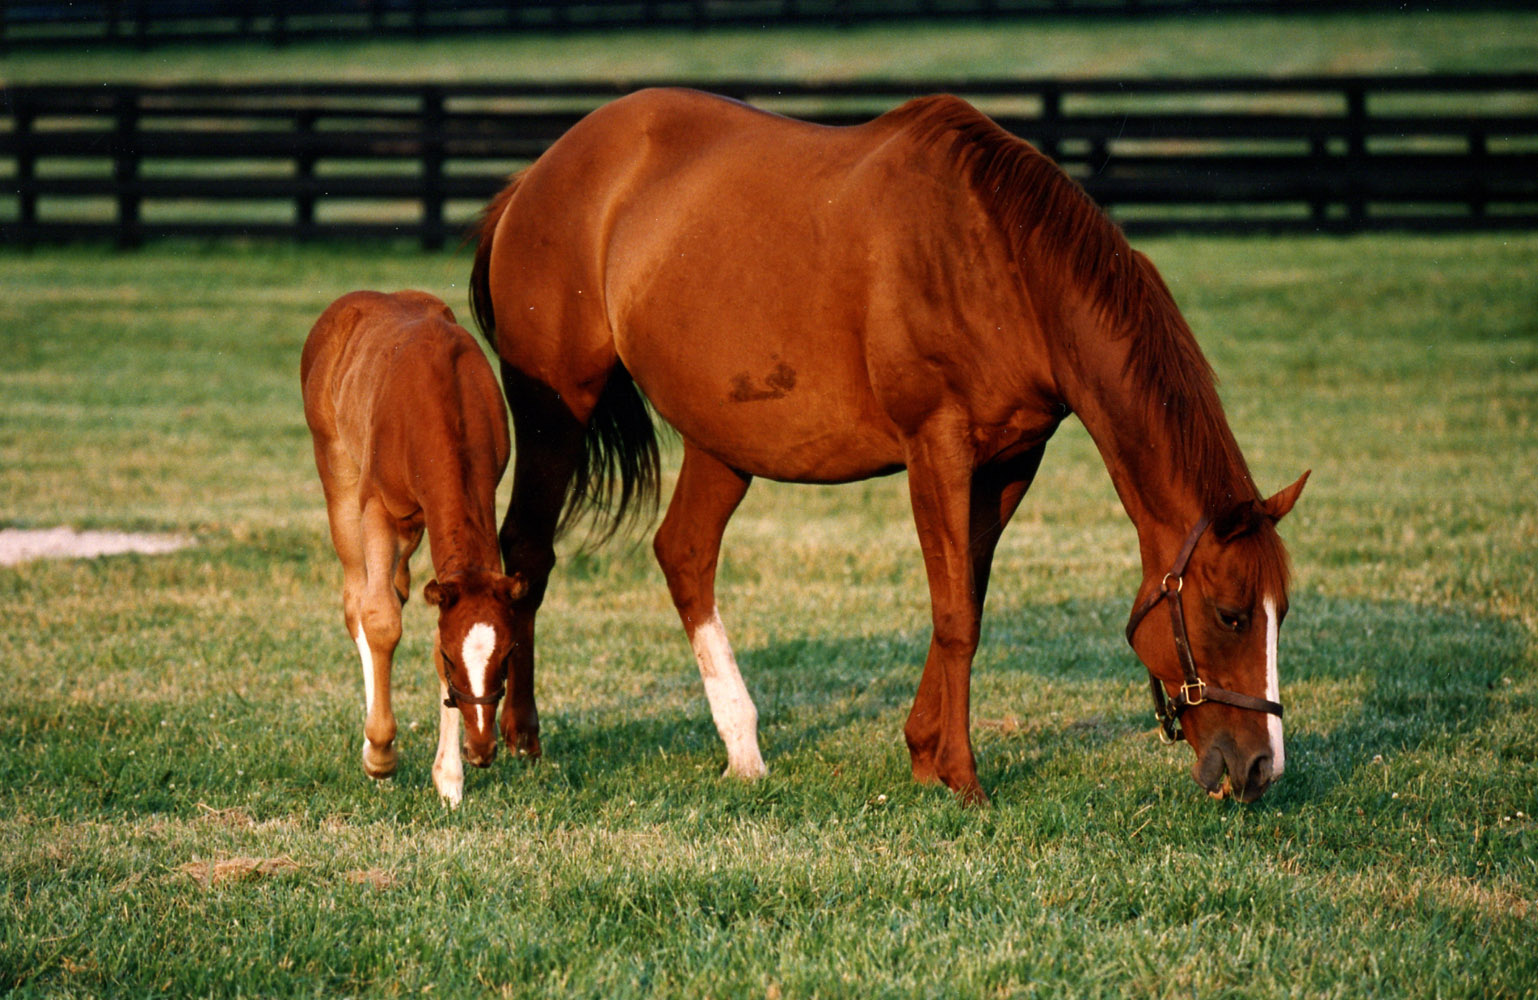 Genuine Risk with her foal at Three Chimneys Farm, June 1993 (Barbara D. Livingston/Museum Collection)